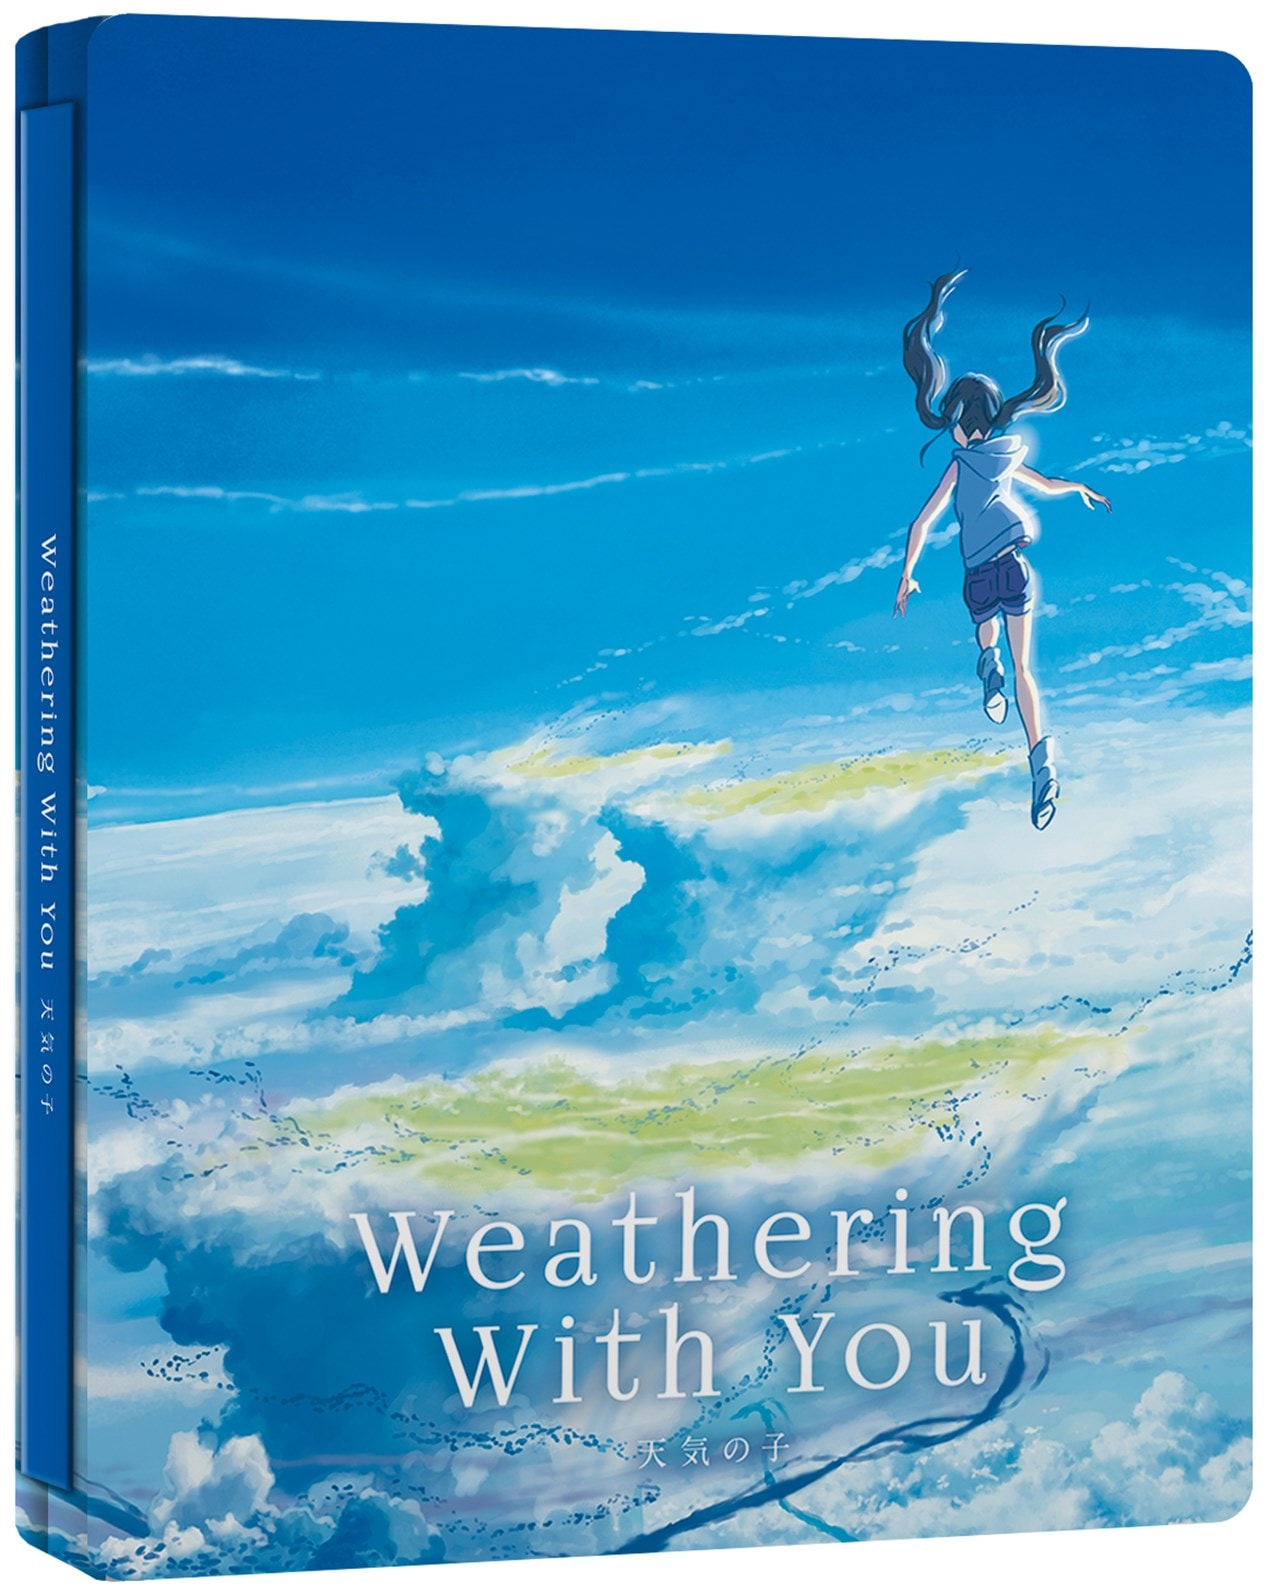 Weathering With You Limited Edition Steelbook Collector's Edition - 1